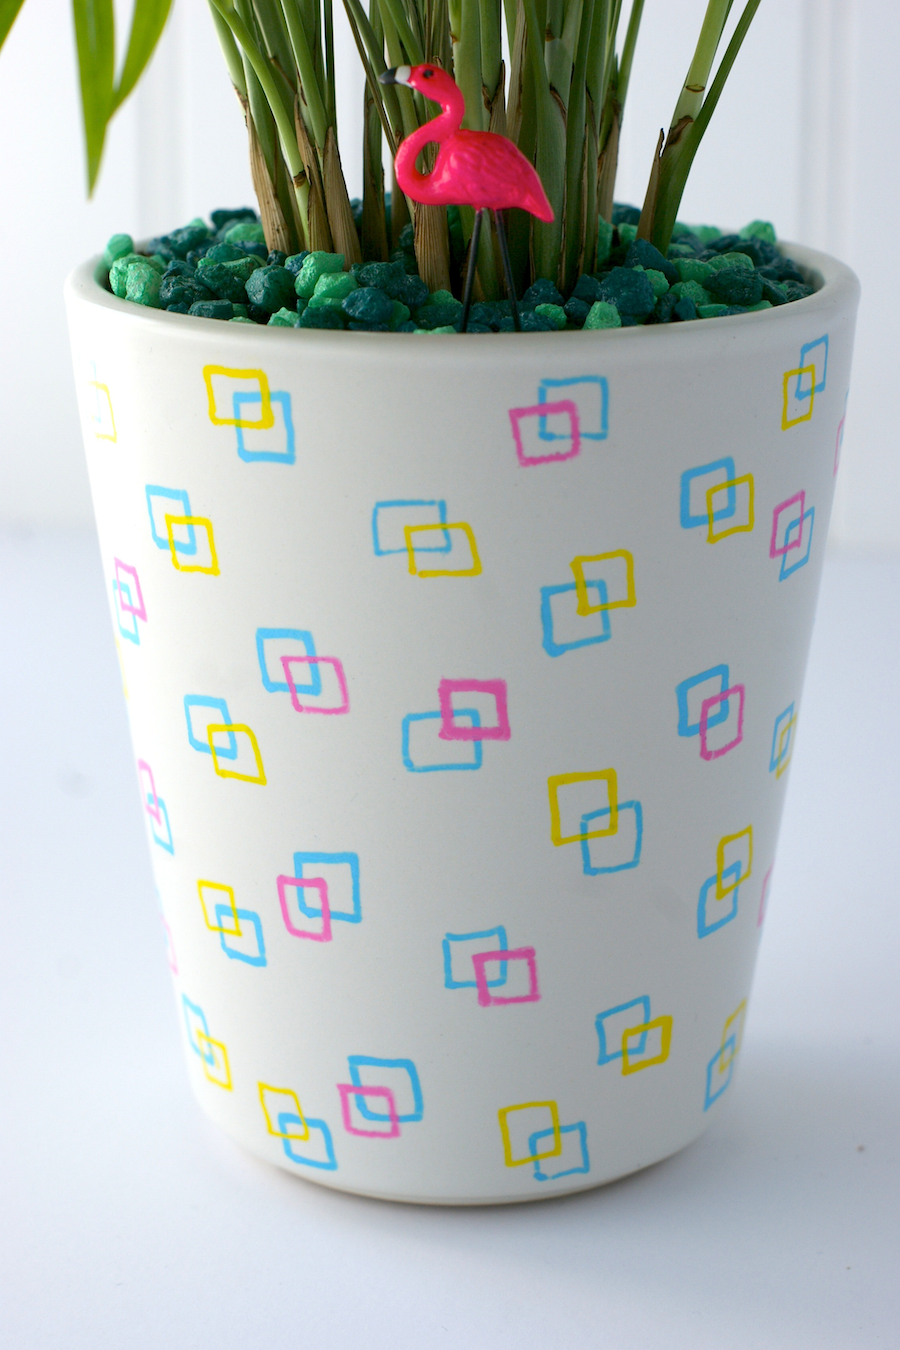 Crafting with markers - DIY retro planter